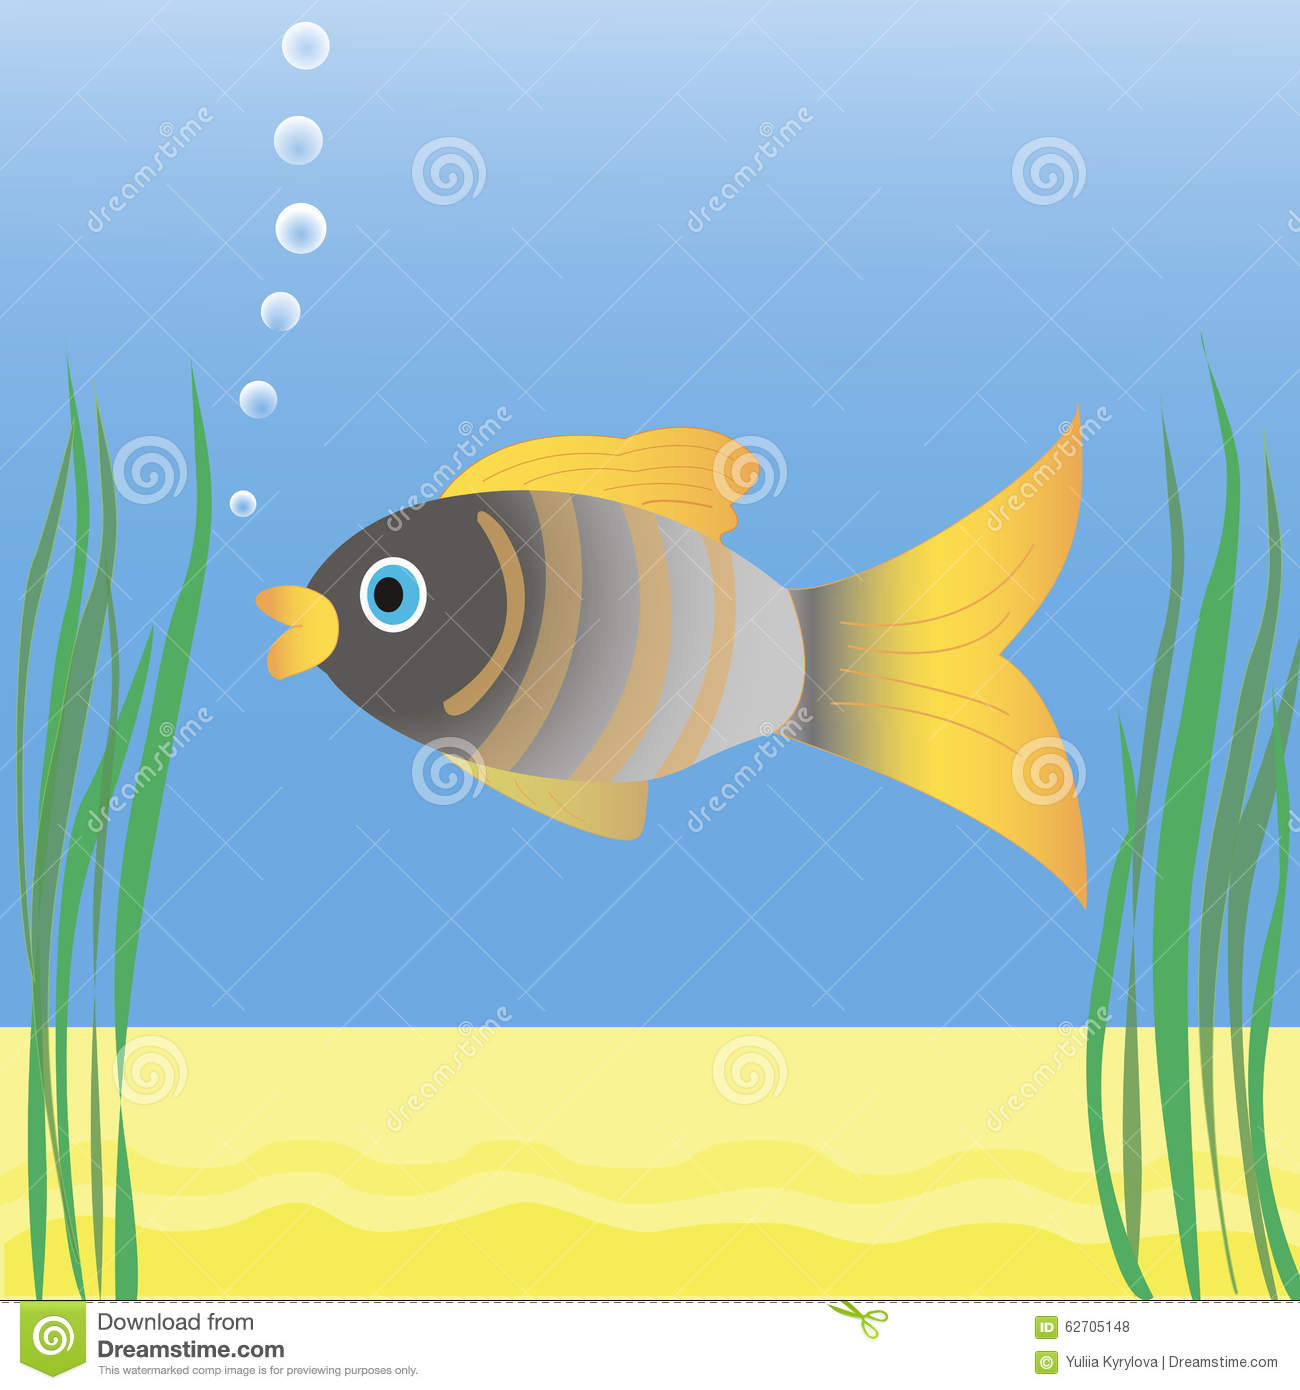 Fish swimming in blue water stock vector image 62705148 for Dream of fish swimming